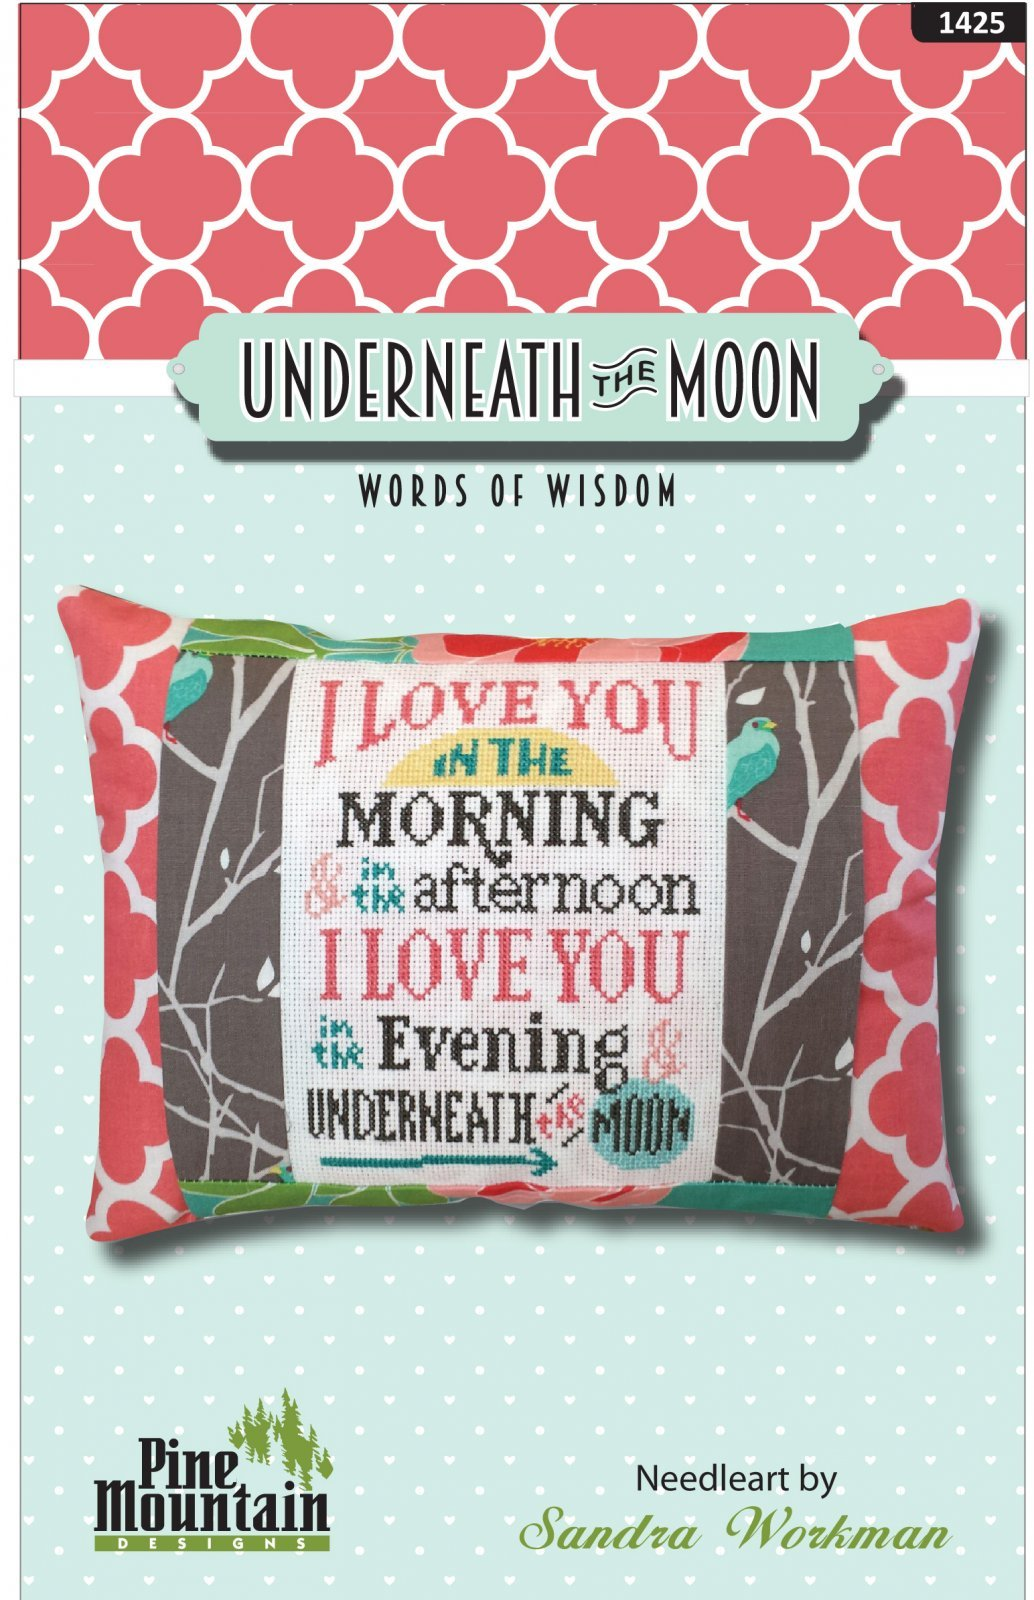 Underneath the Moon Pillow Kit